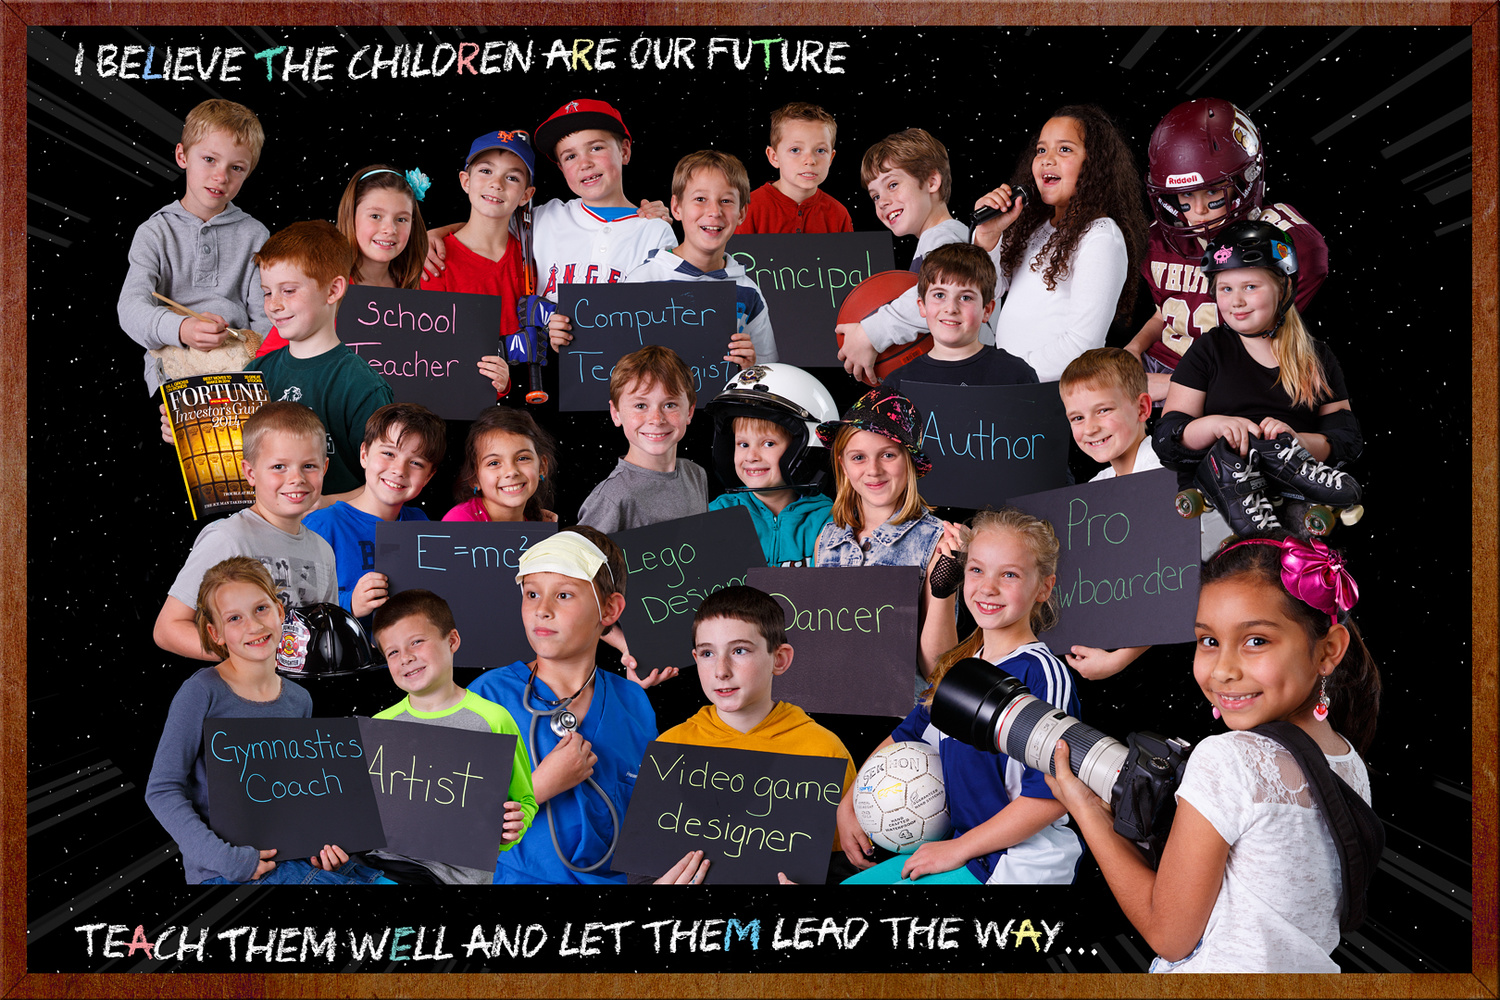 I believe the children are the future... by Rick Pappas